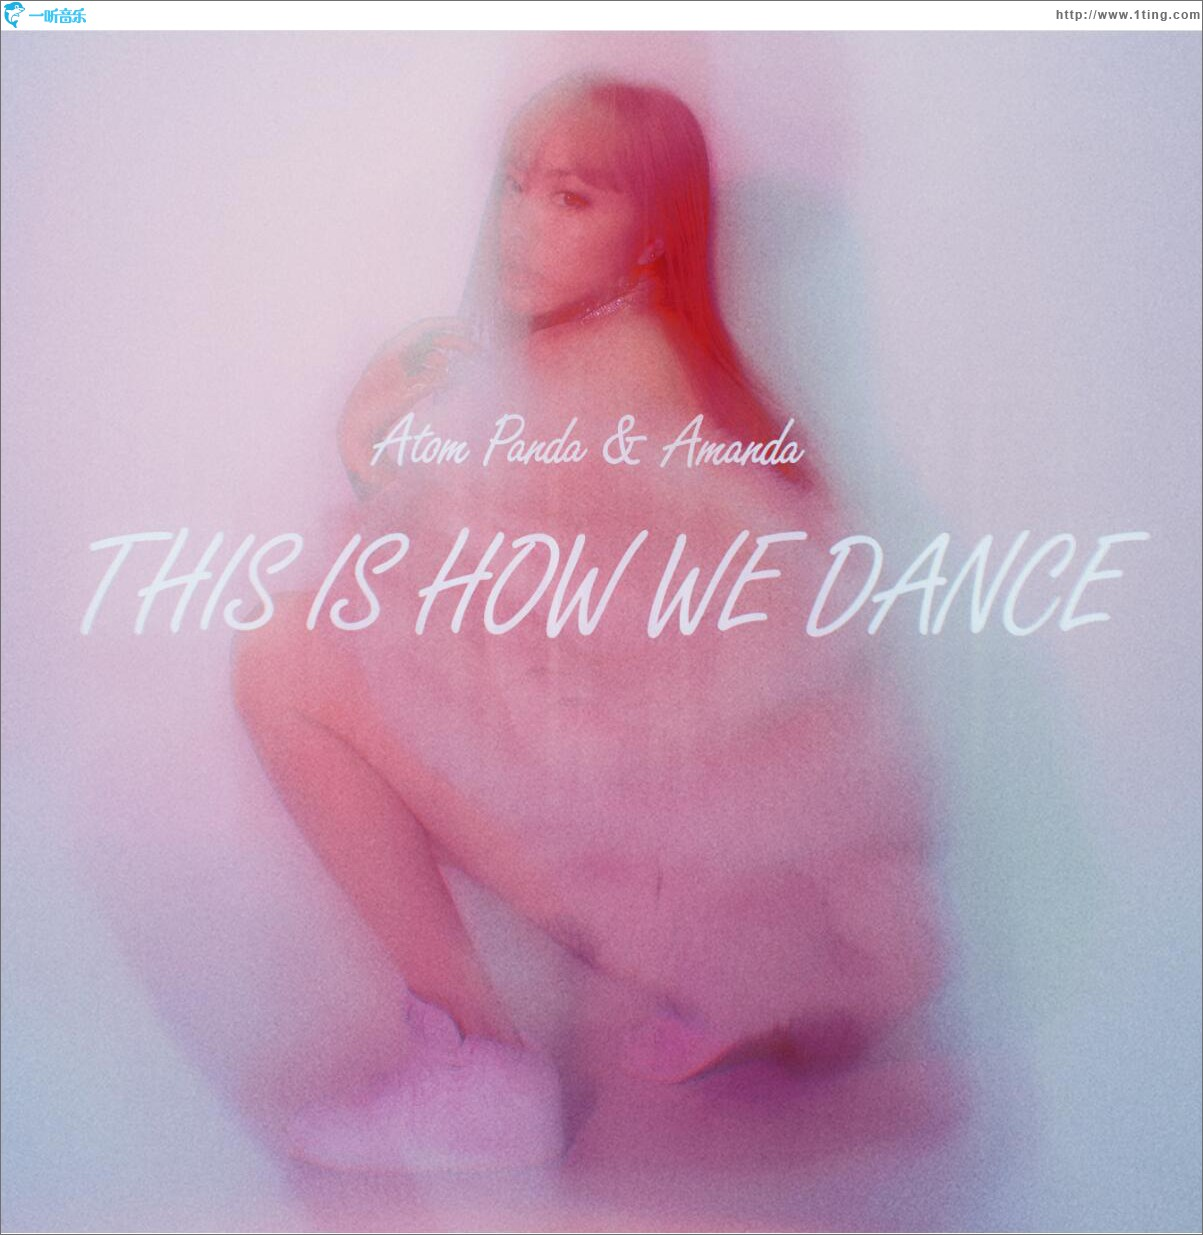 This Is How We Dance (单曲)